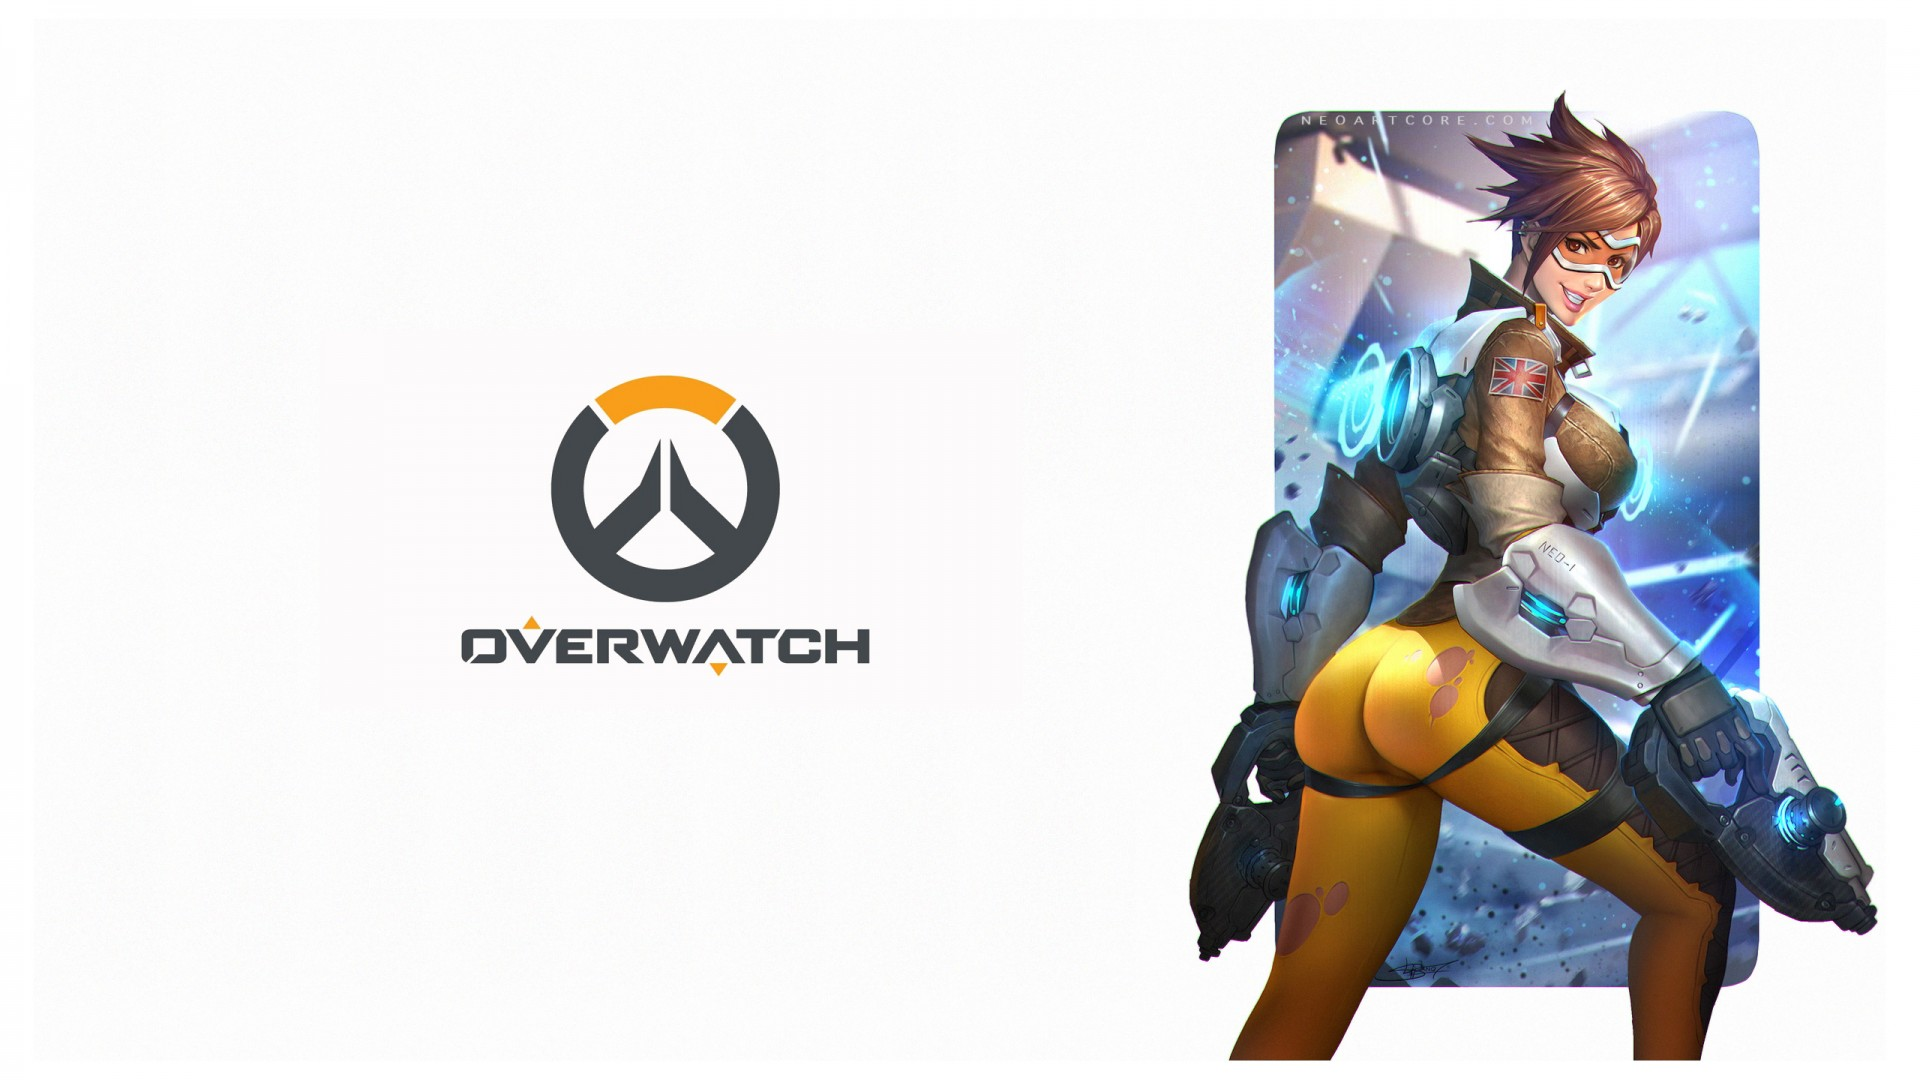 Overwatch Tracer Artwork Wallpapers HD Wallpapers ID 17879